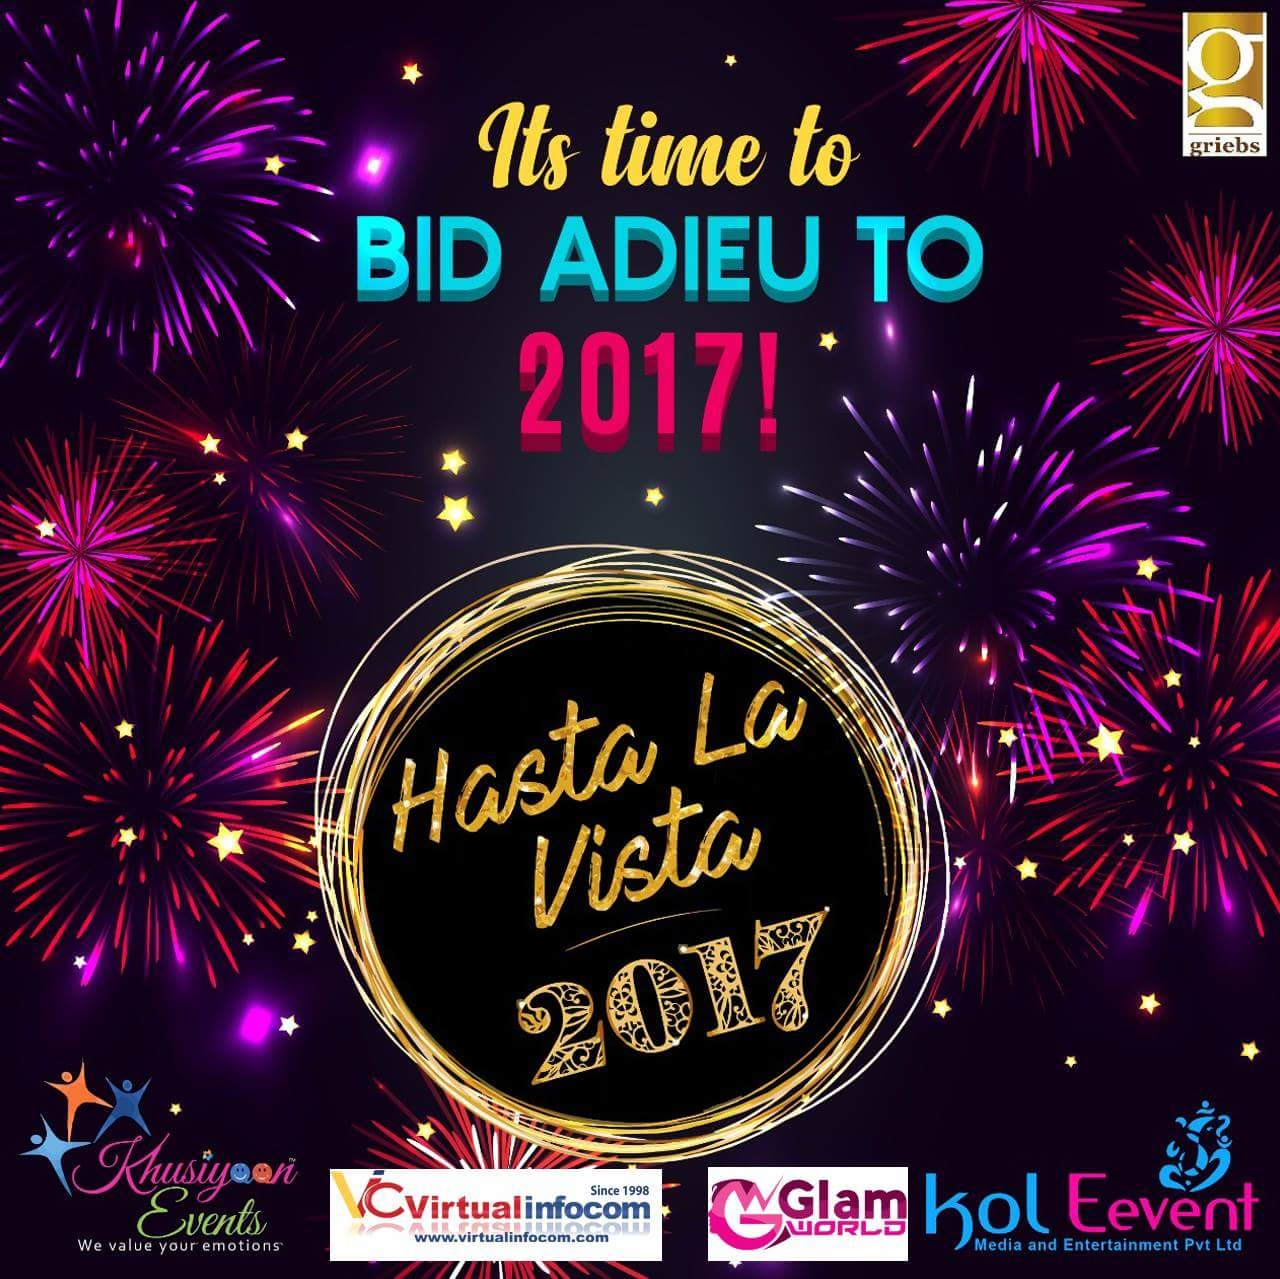 The world of exciting rides, Easel World brings the big night for those seeking exciting New Year events in Kolkata 2017. Kol Event organizes a Stunner New Year Eve Parties in Kolkata are up on Events High to bring in 2018 with a twist of spectacular.  #KolkataEvents #GlamWorldFace #31stnight #KolEvent